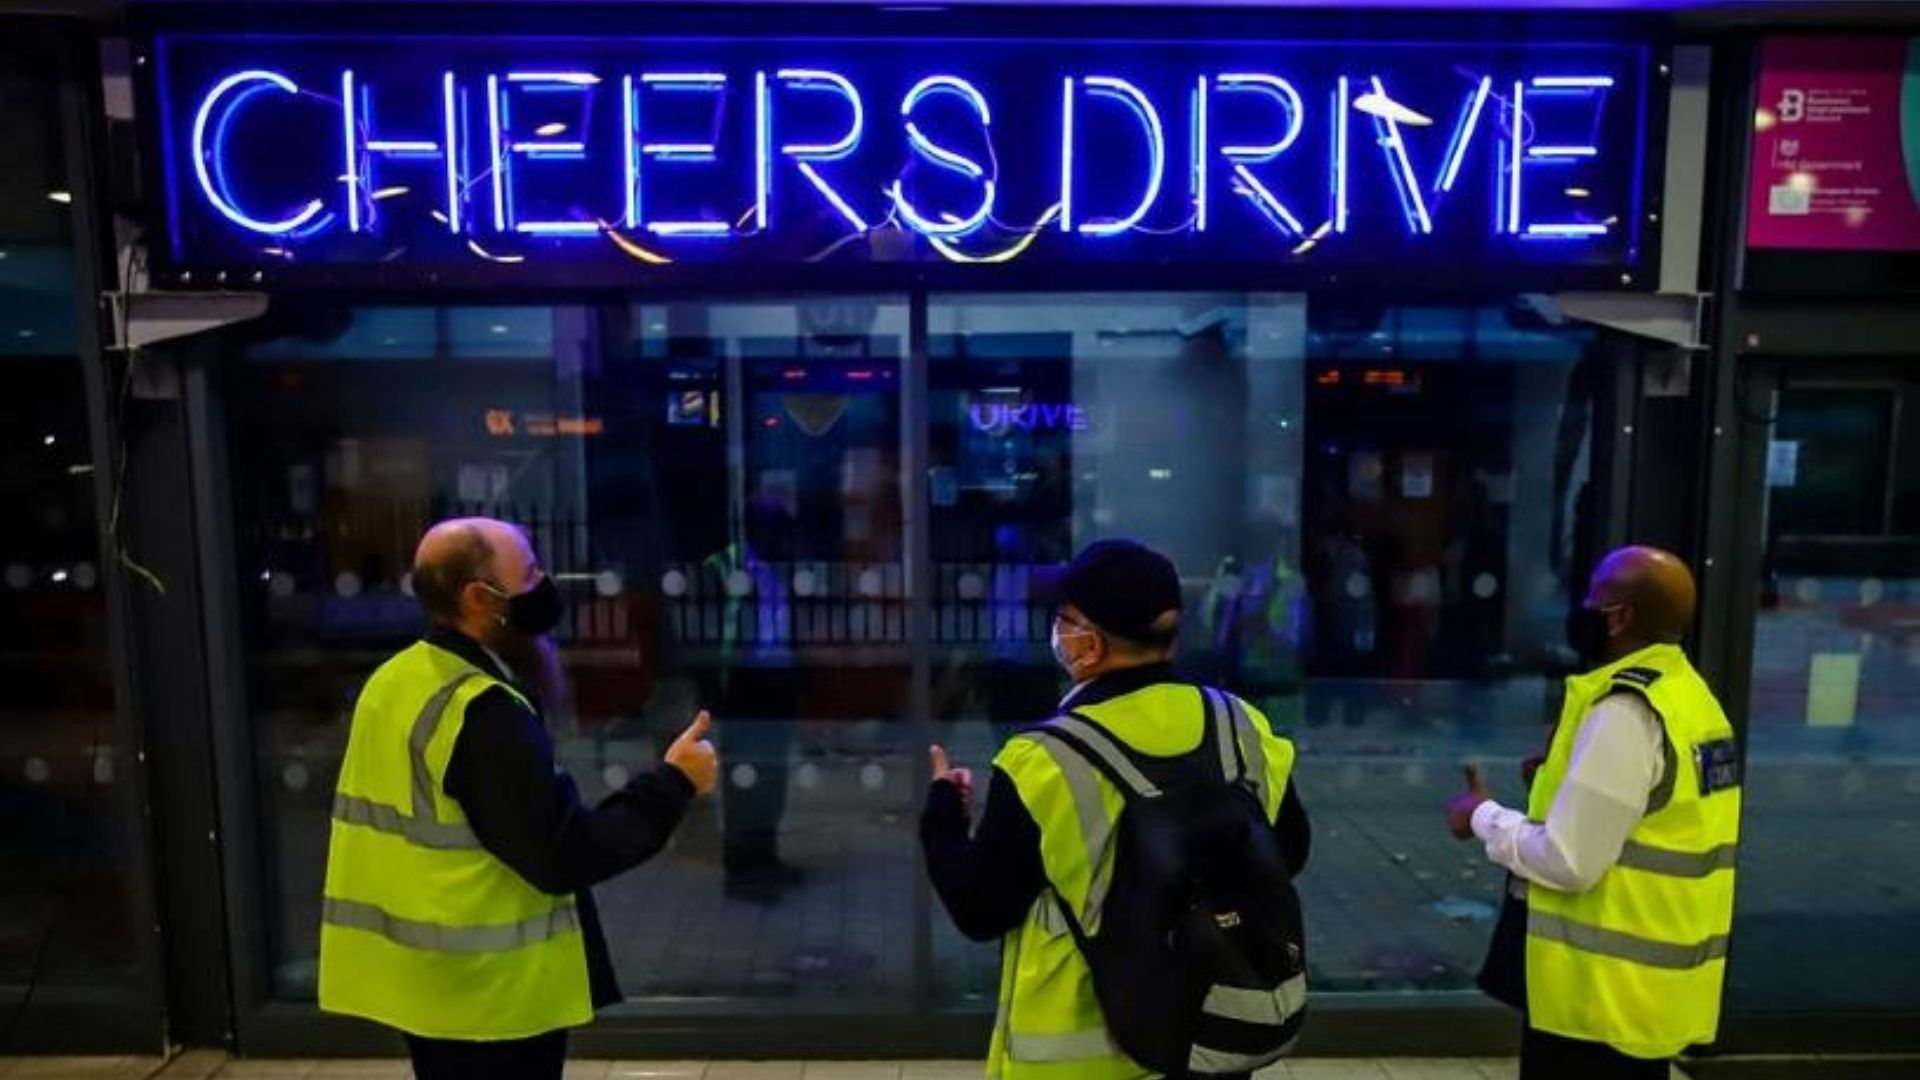 Image of illuminated 'Cheers Drive' sign in Bristol Bus Station with three bus drivers looking at it